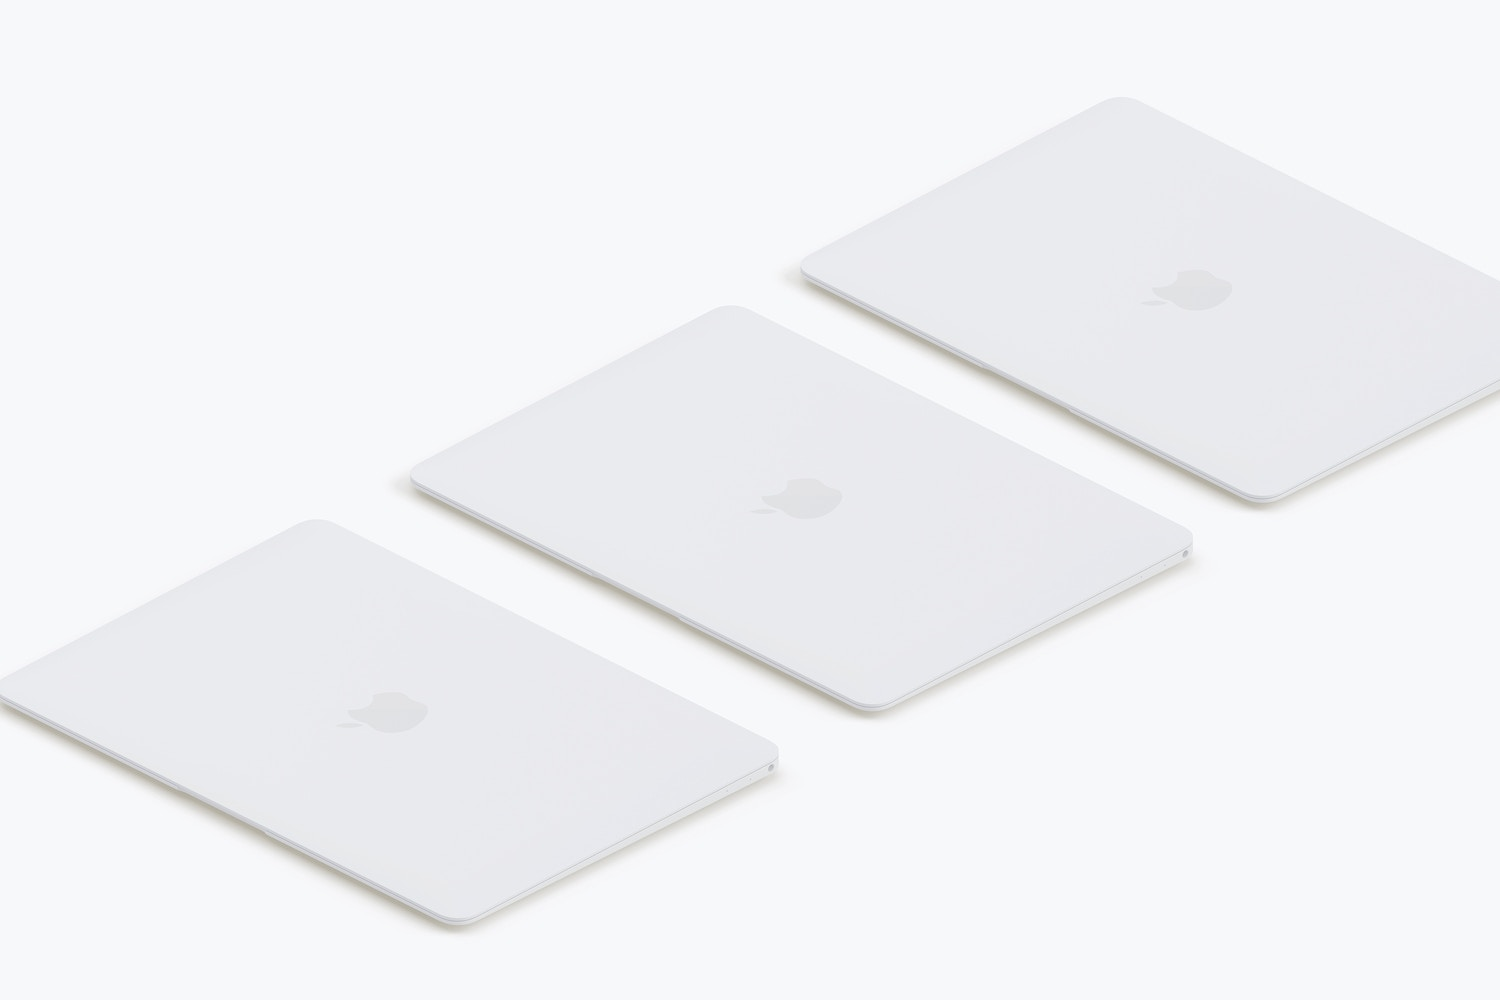 Clay MacBook Mockup, Isometric Left View 02 (3) by Original Mockups on Original Mockups